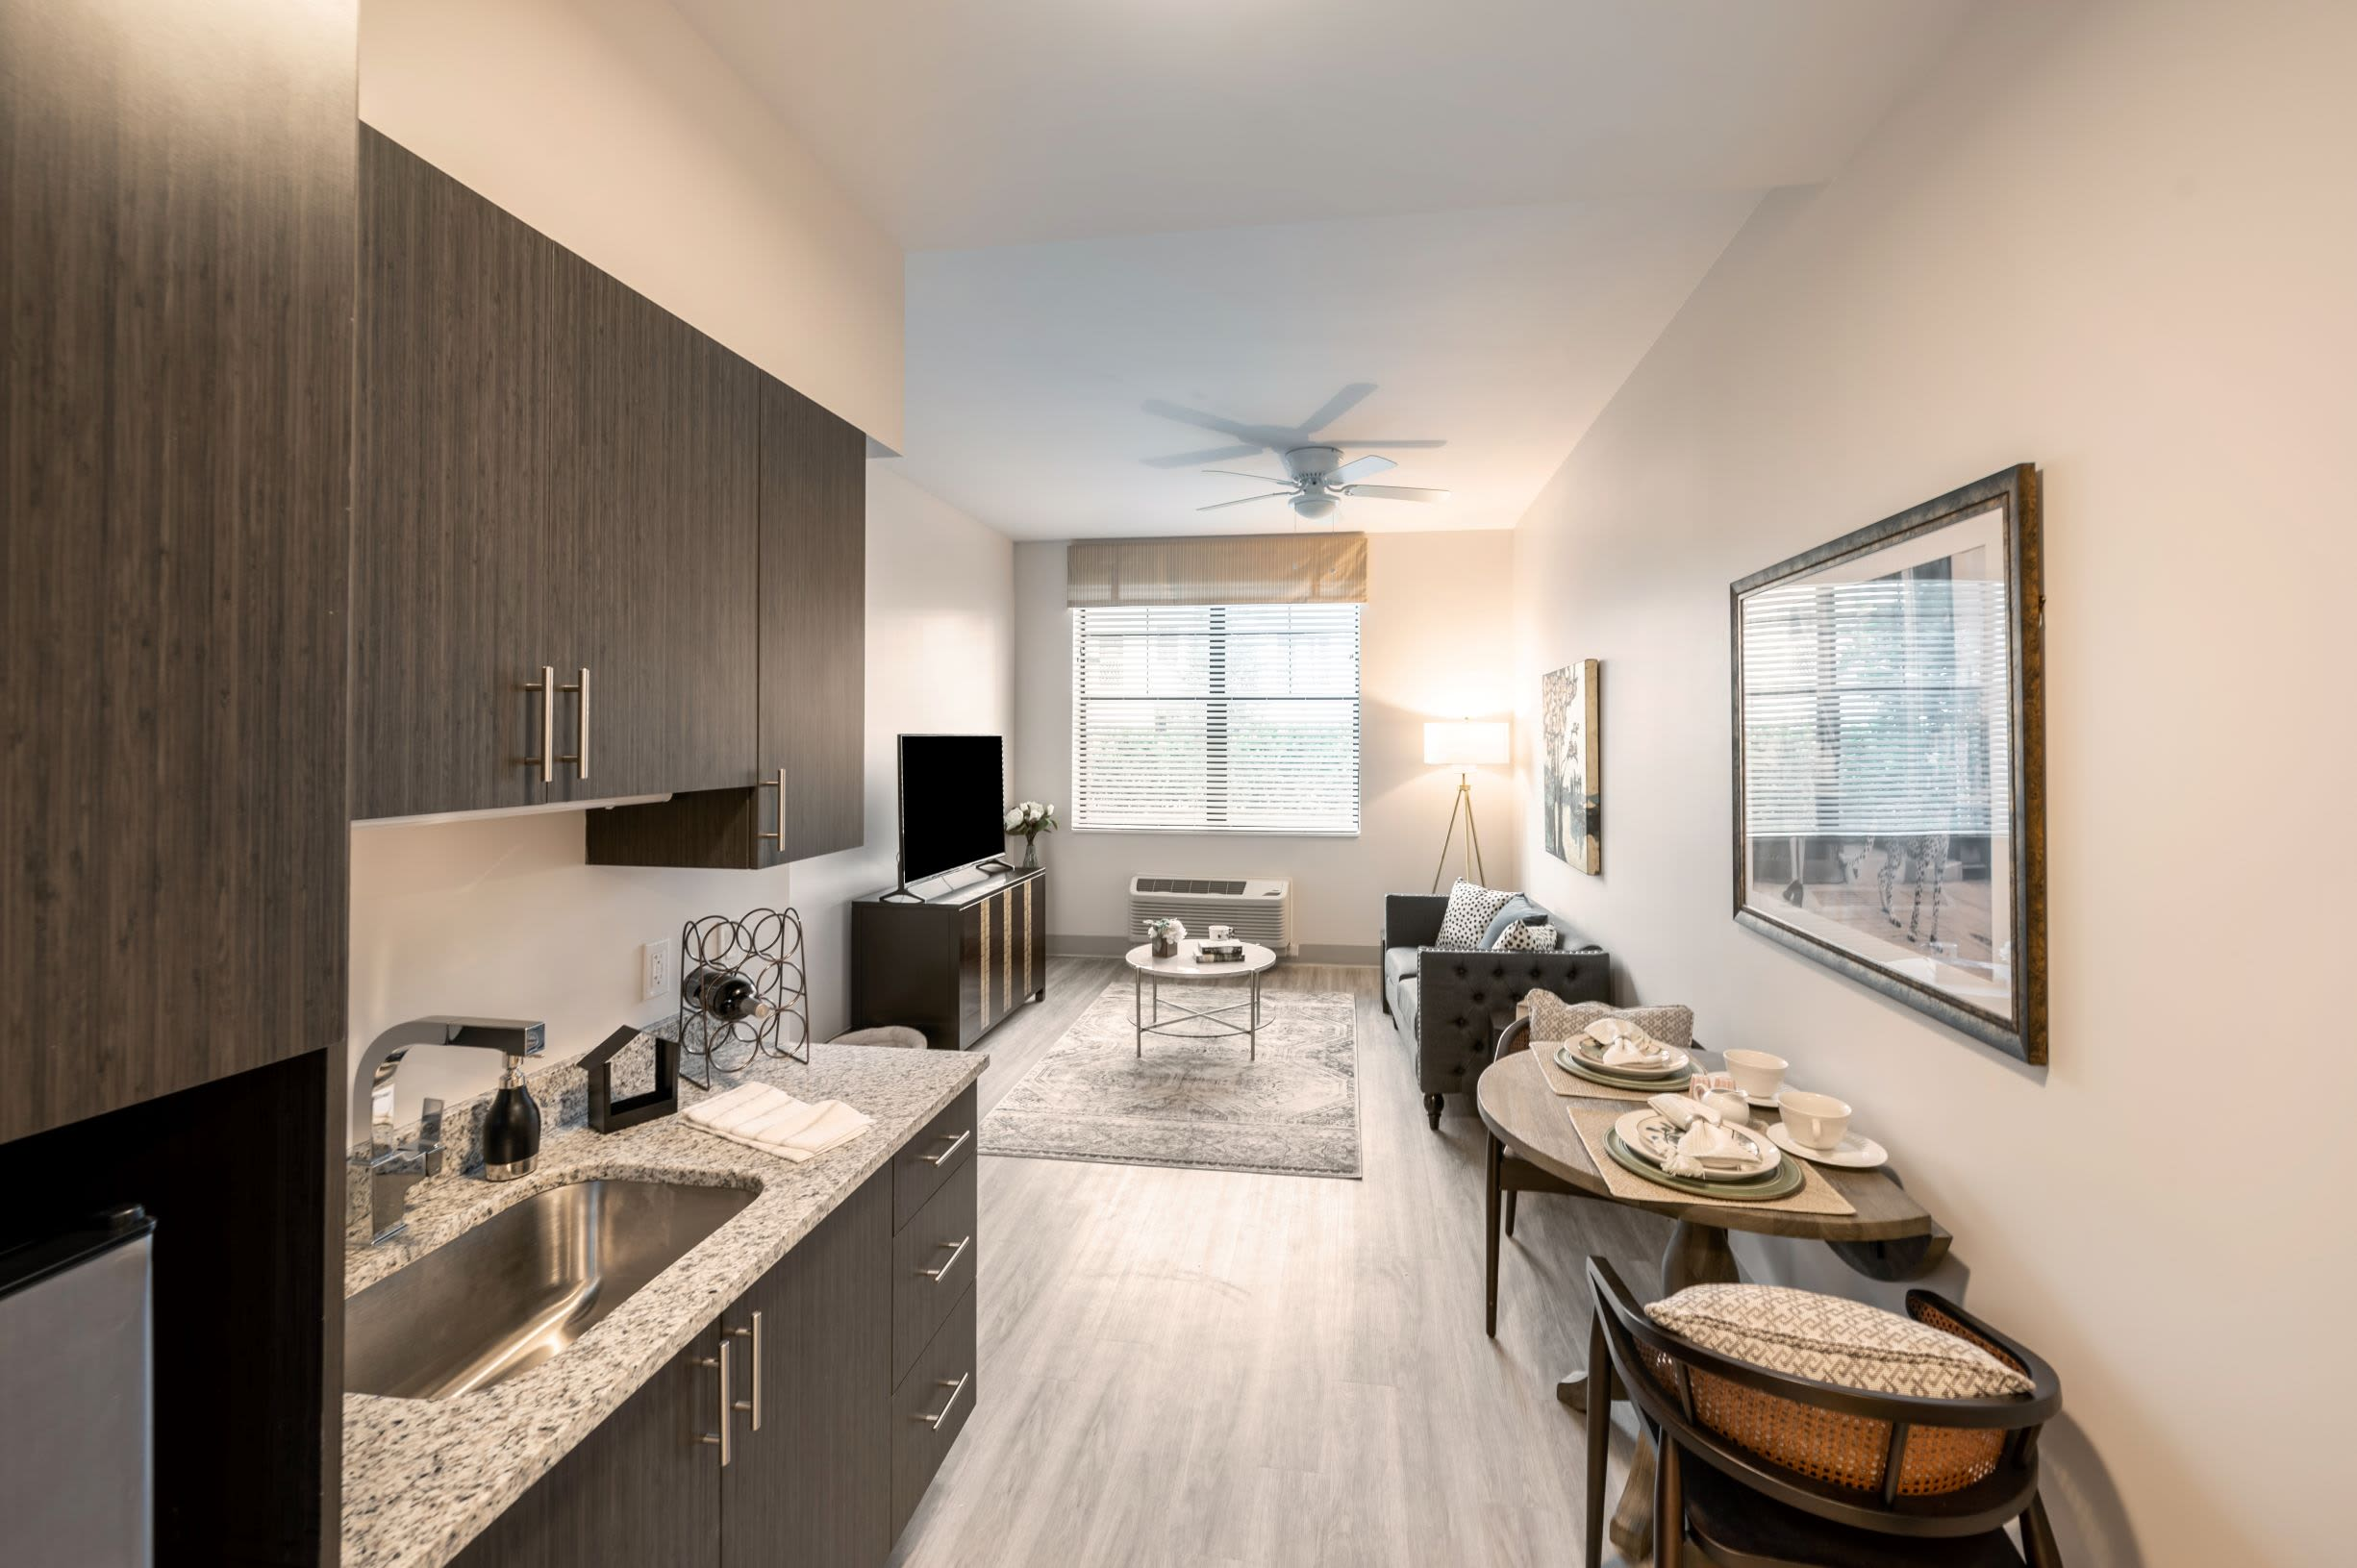 Model apartment at Inspired Living Delray Beach in Delray Beach, Florida